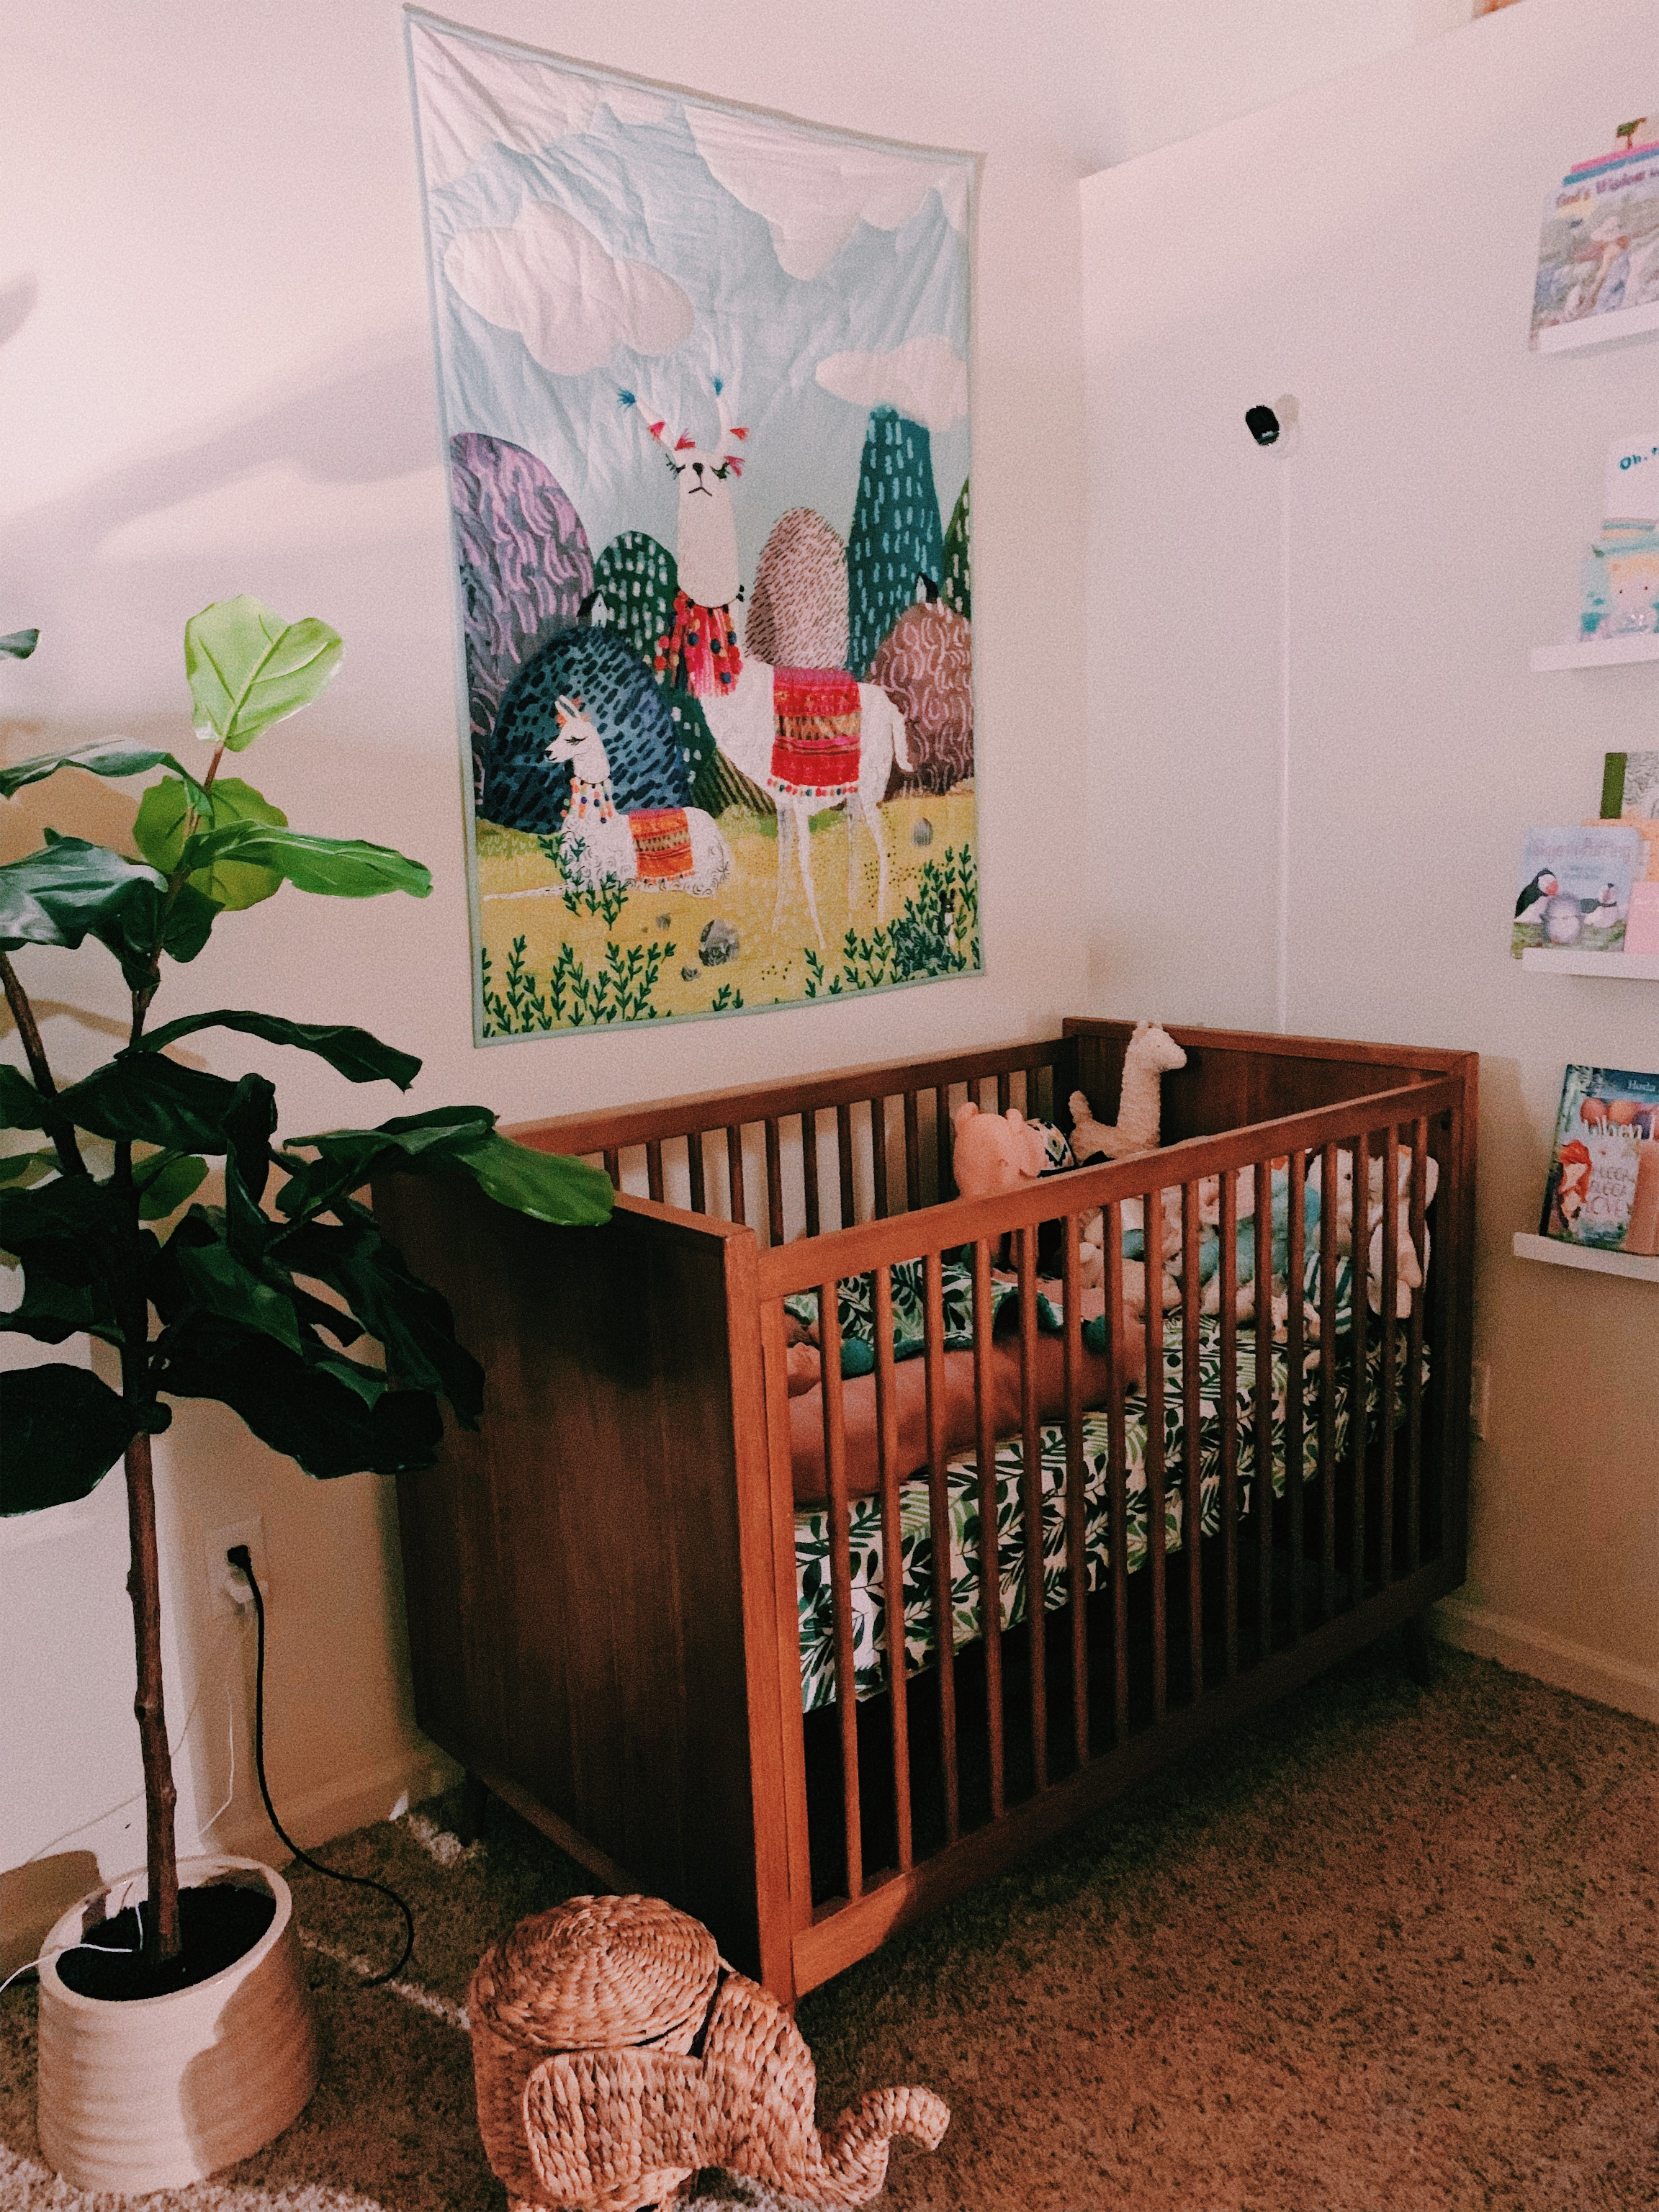 We fell in love with the Pottery Barn/ West Elm mash-up crib, which was a gift from my mom. It's ethically produced too!